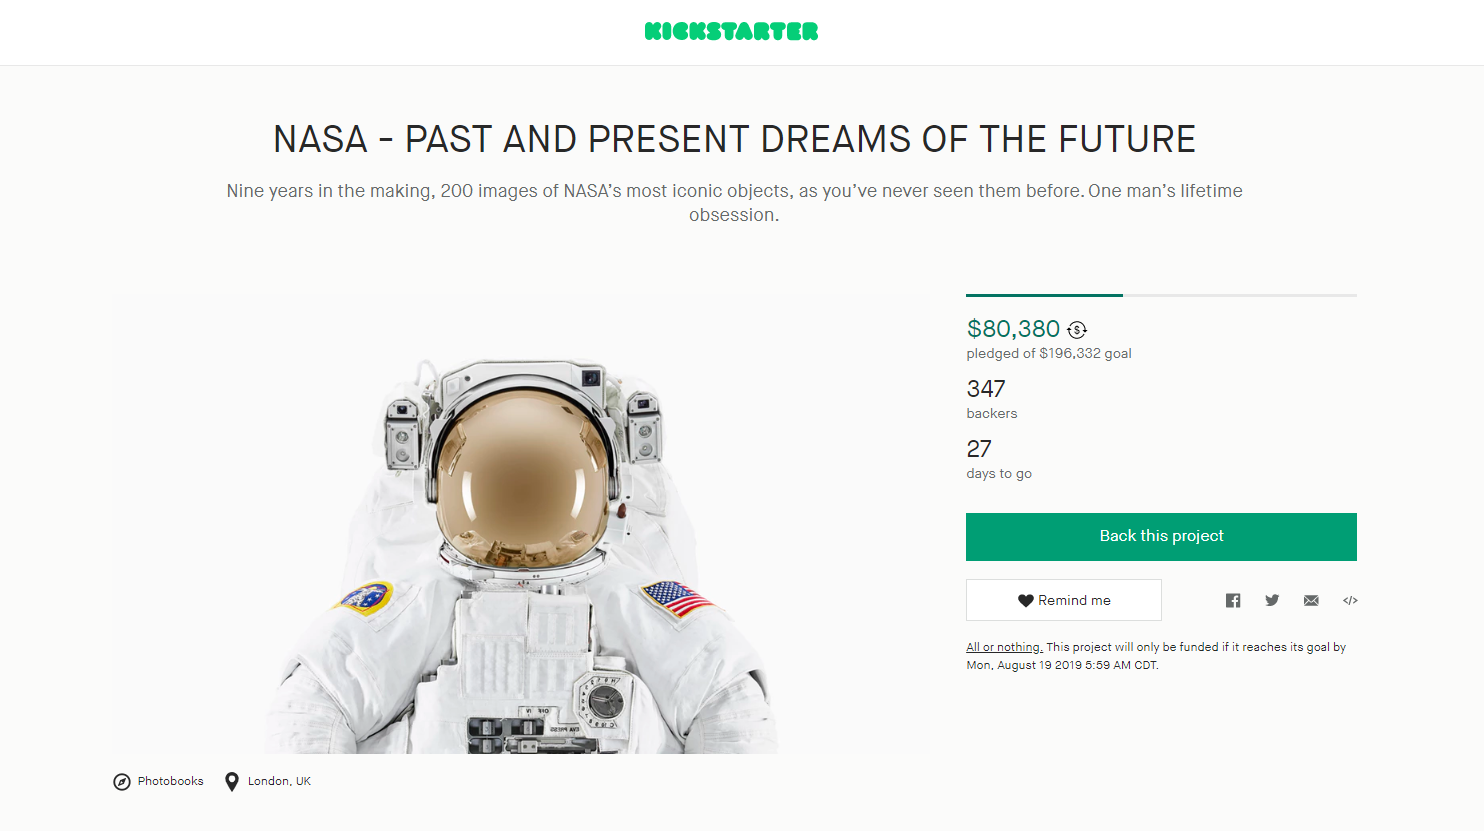 A Photography Project Has Captured Iconic NASA Items Like Never Before